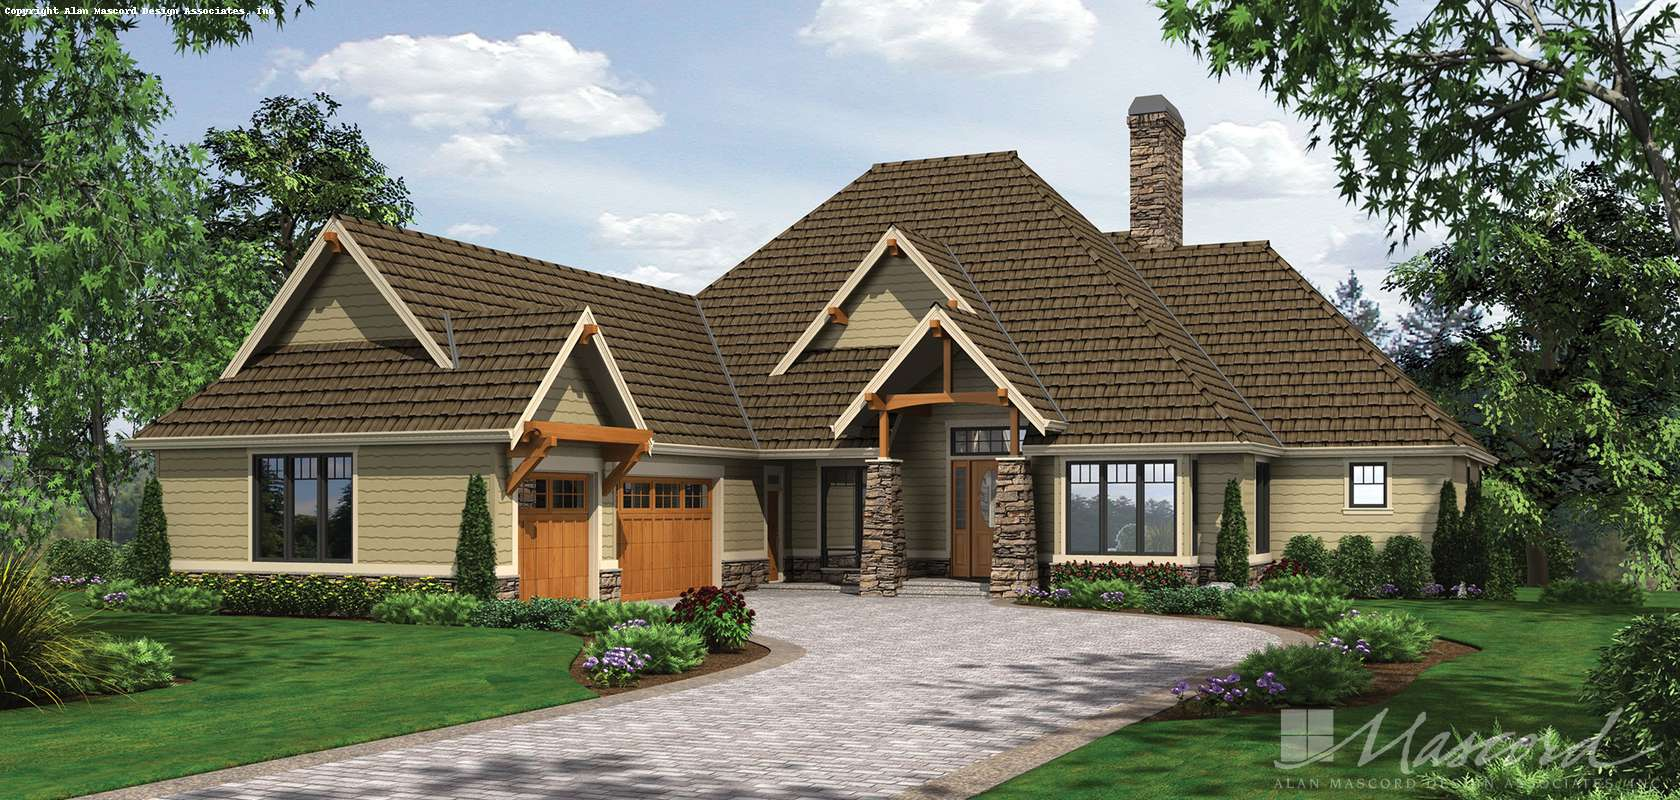 Mascord House Plan 1413: The Lambert